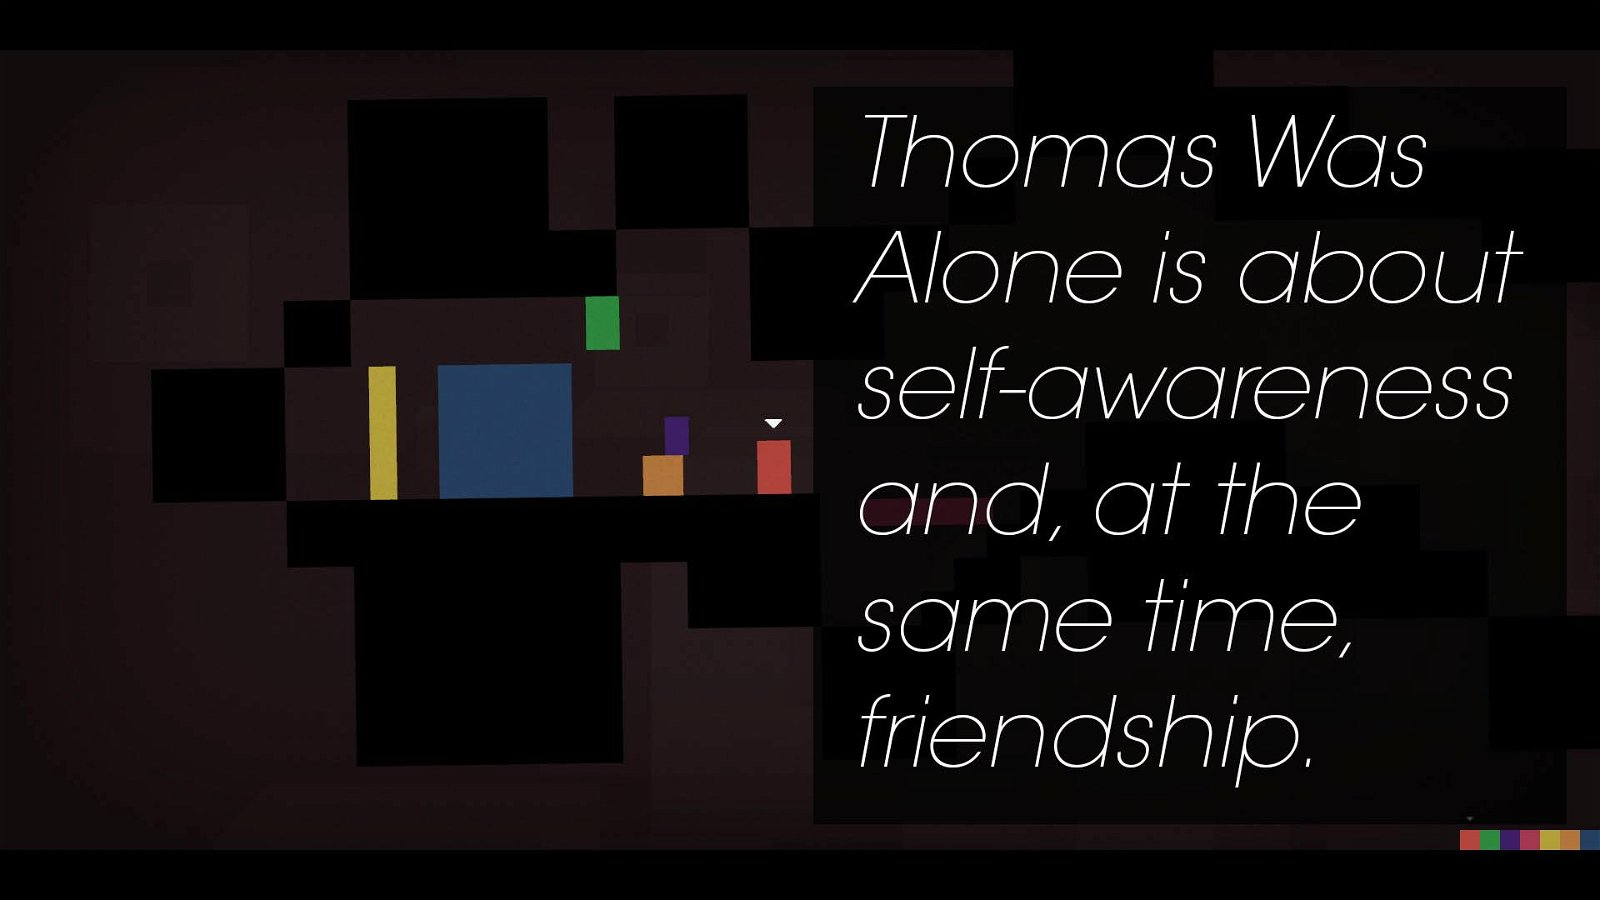 thomasmiddlequote.jpg